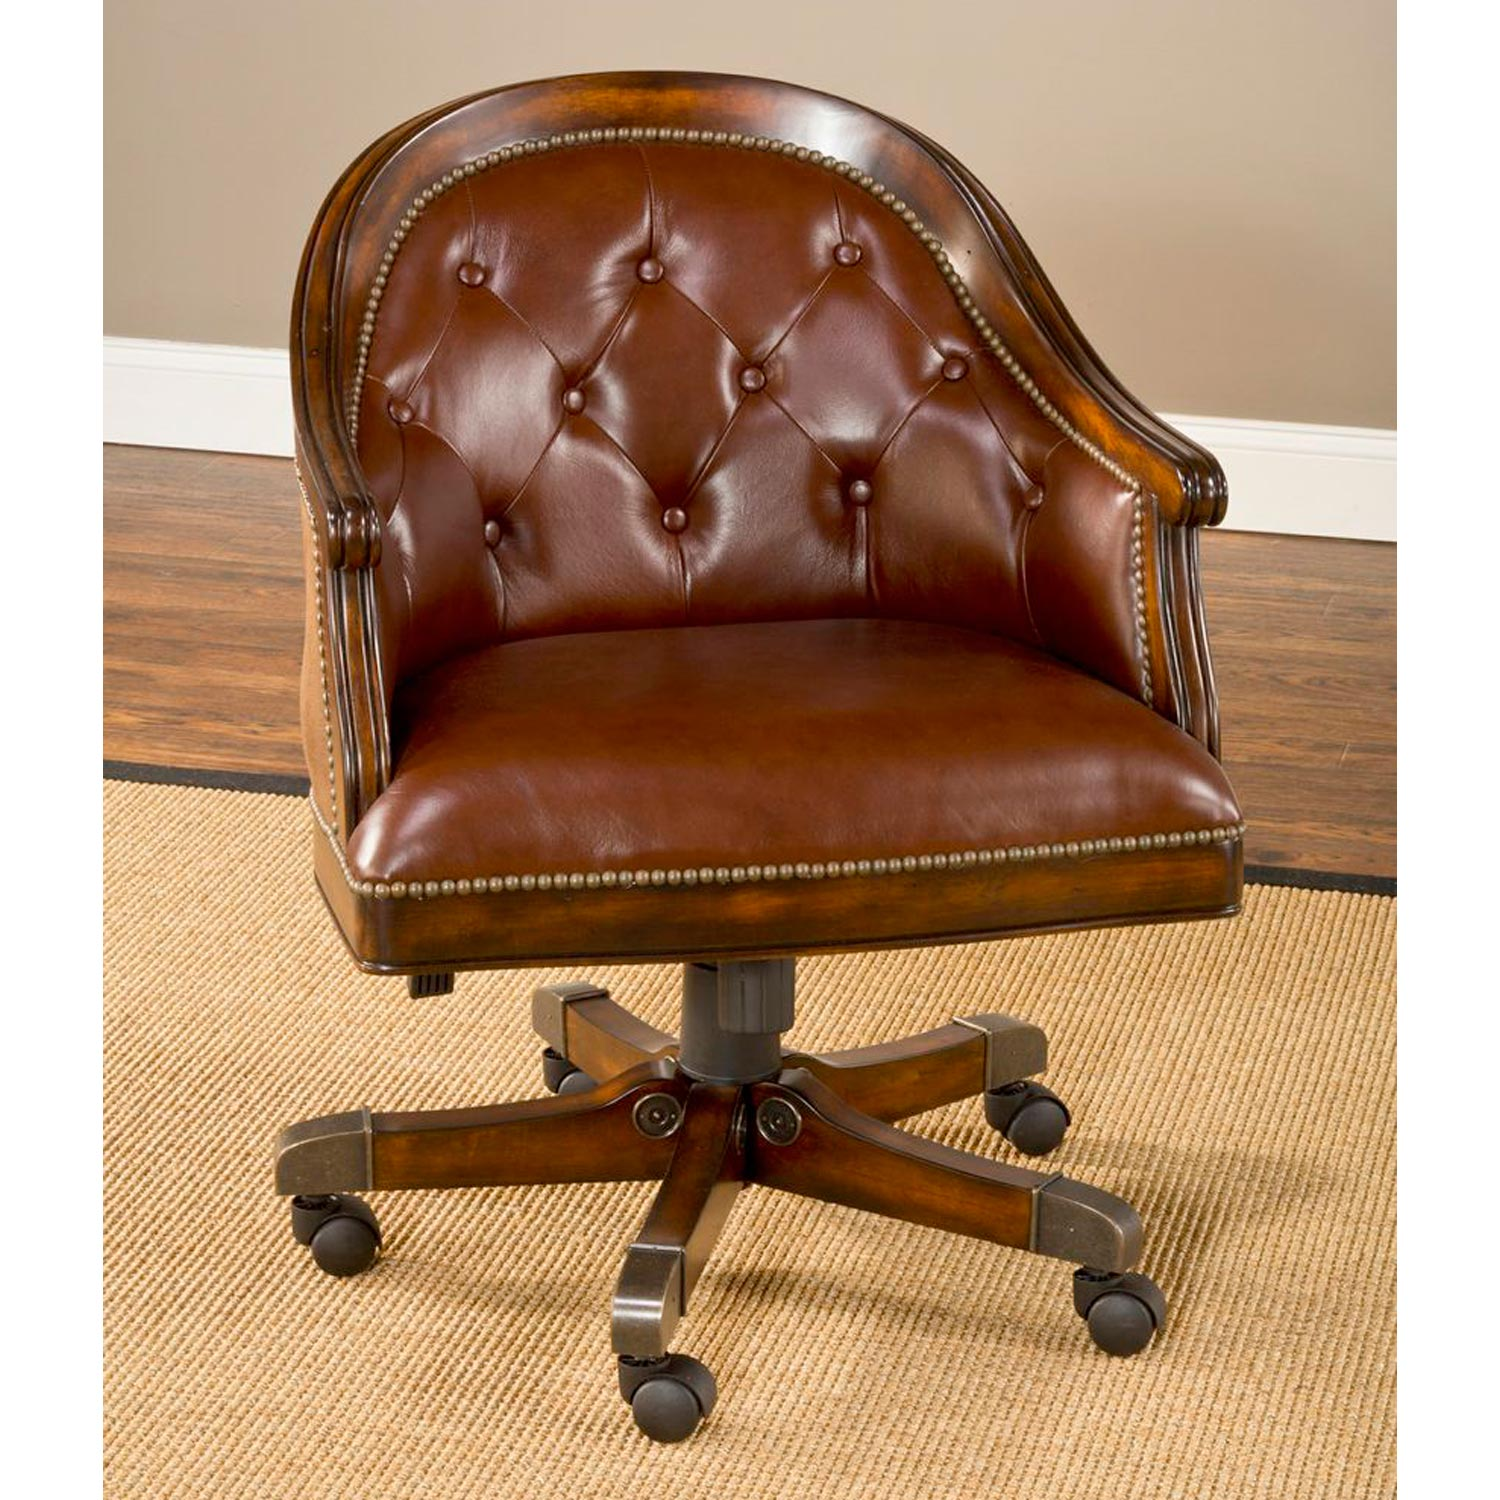 wood desk chair no wheels renting chairs and tables harding game table set brown leather rich cherry